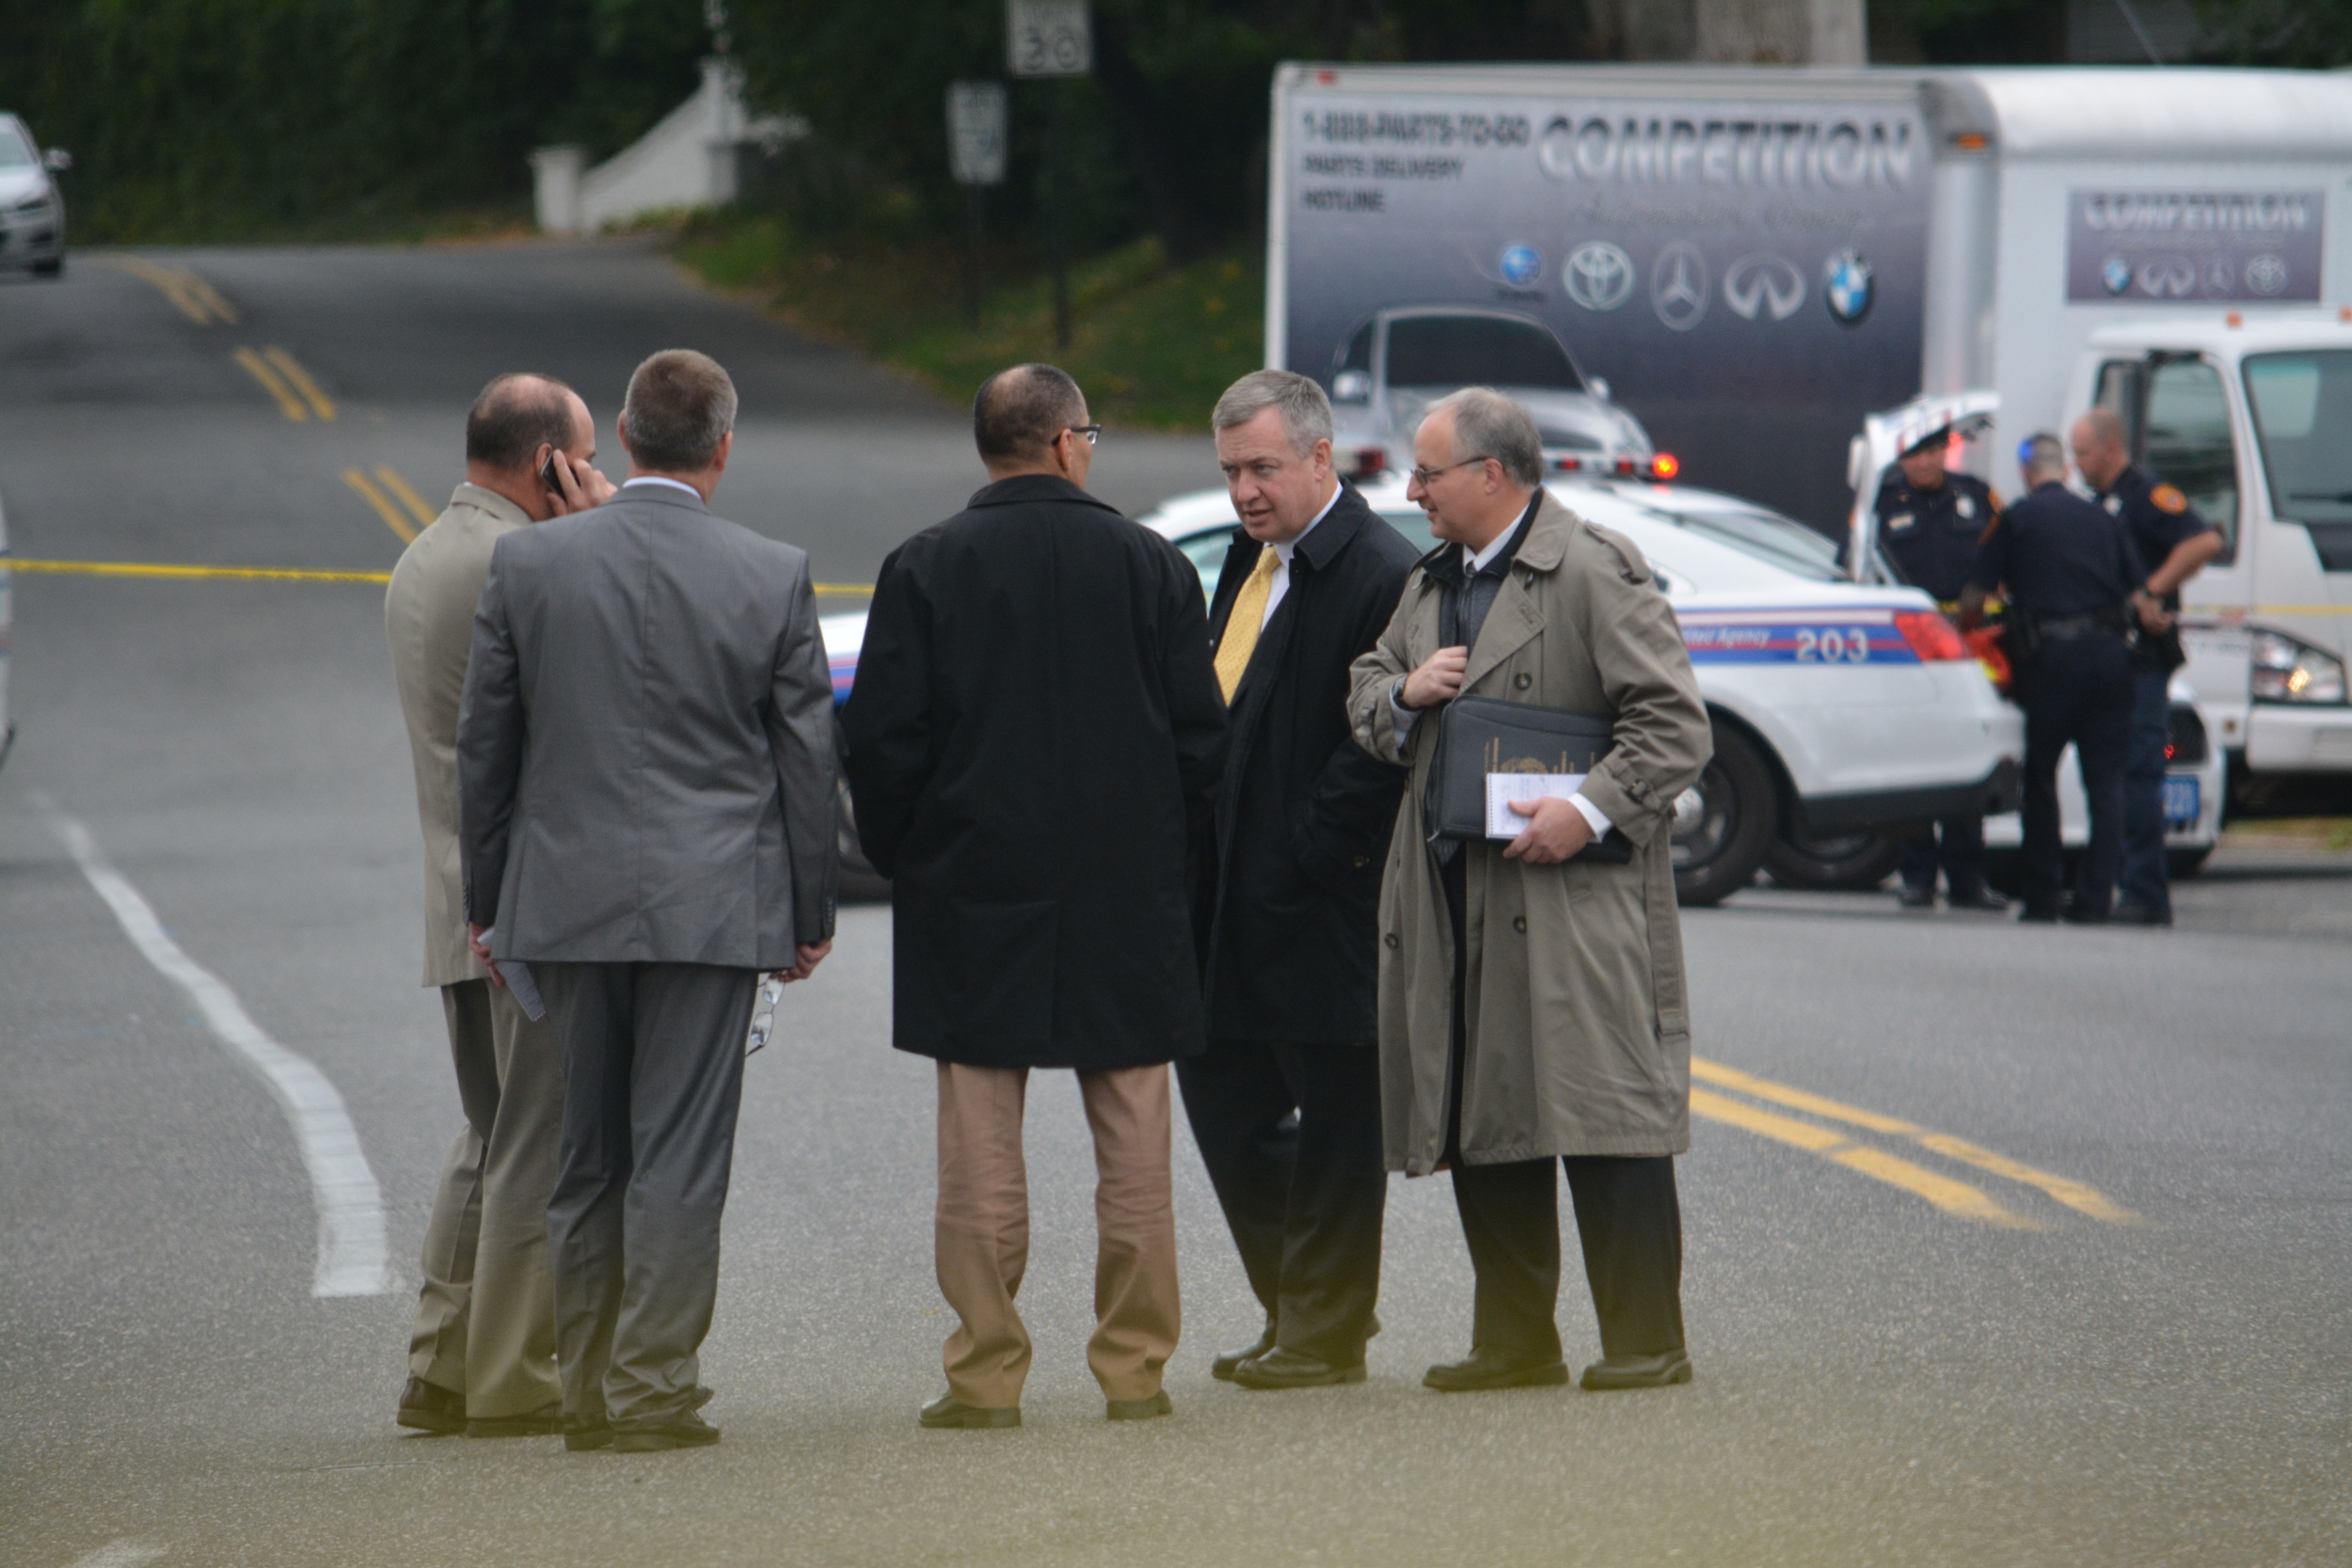 Detectives congregate at the crime scene where Rosales' body was found.